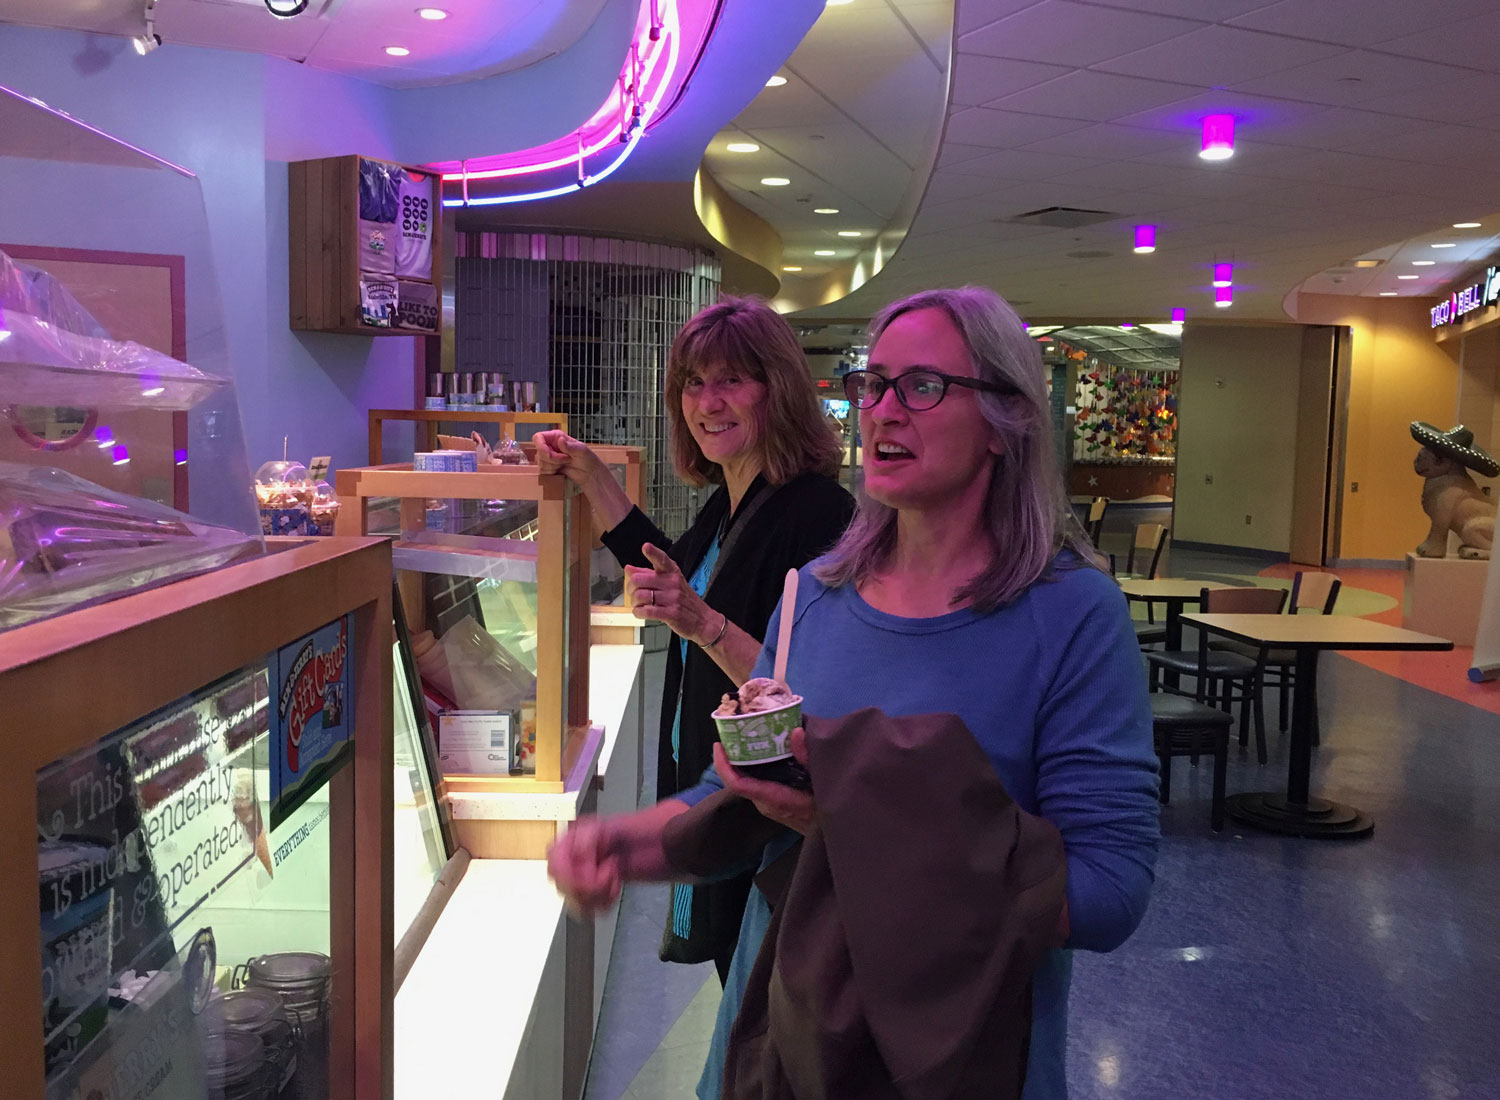 Rochelle and Karen at the Ben & Jerry's counter after dinner on our first night. We wandered the streets to find the food court of the Vanderbilt Children's Hospital to find this counter!